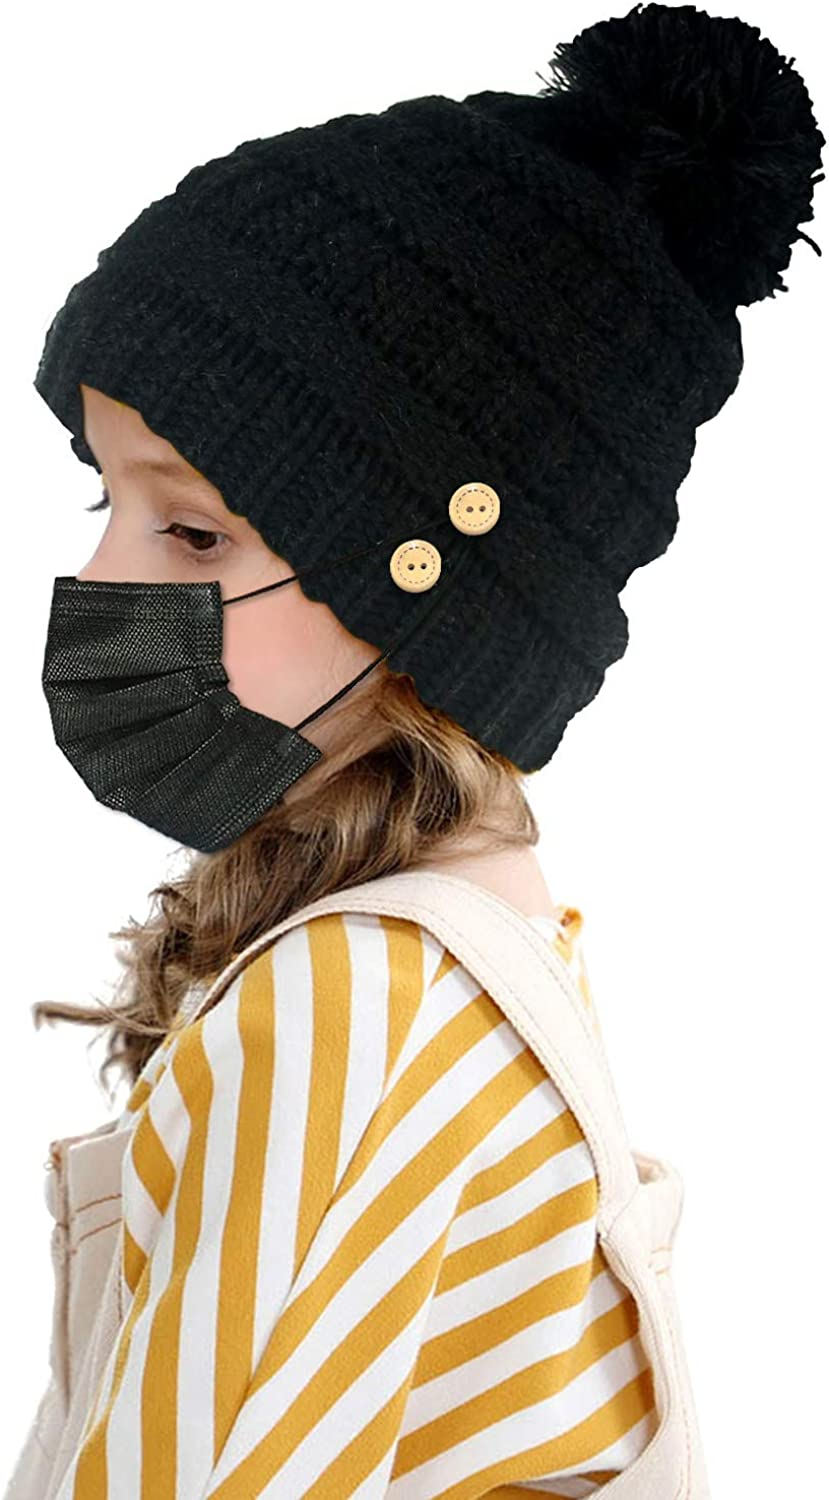 Beanie Hat Lowest price challenge for Boys Girls with Buttons Popular shop is the lowest price challenge to Face Hold Mask